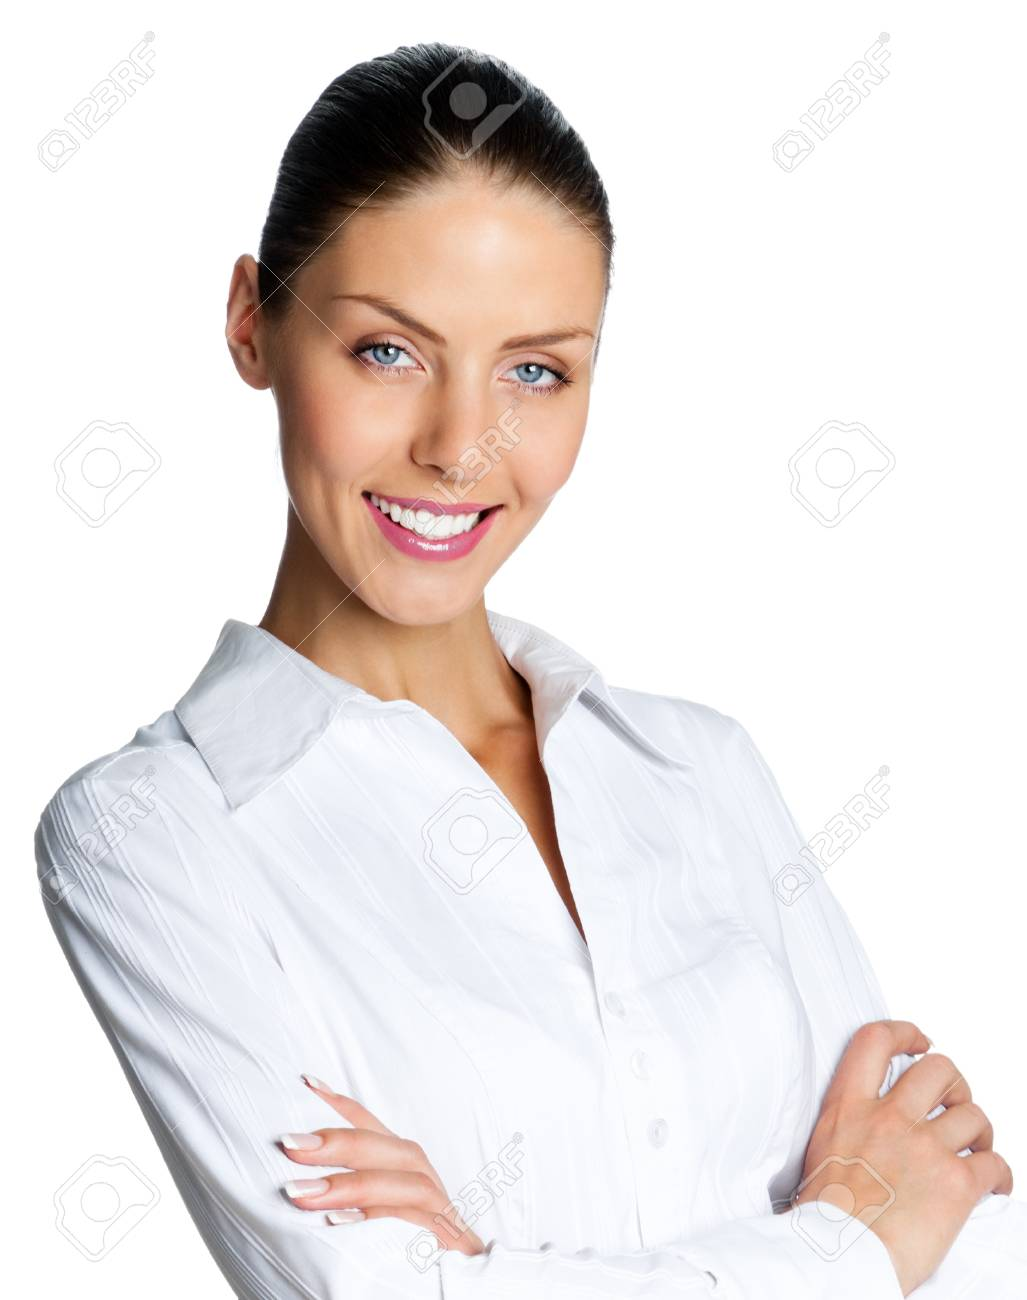 Cheerful smiling business woman, isolated over white background Stock Photo - 17903236